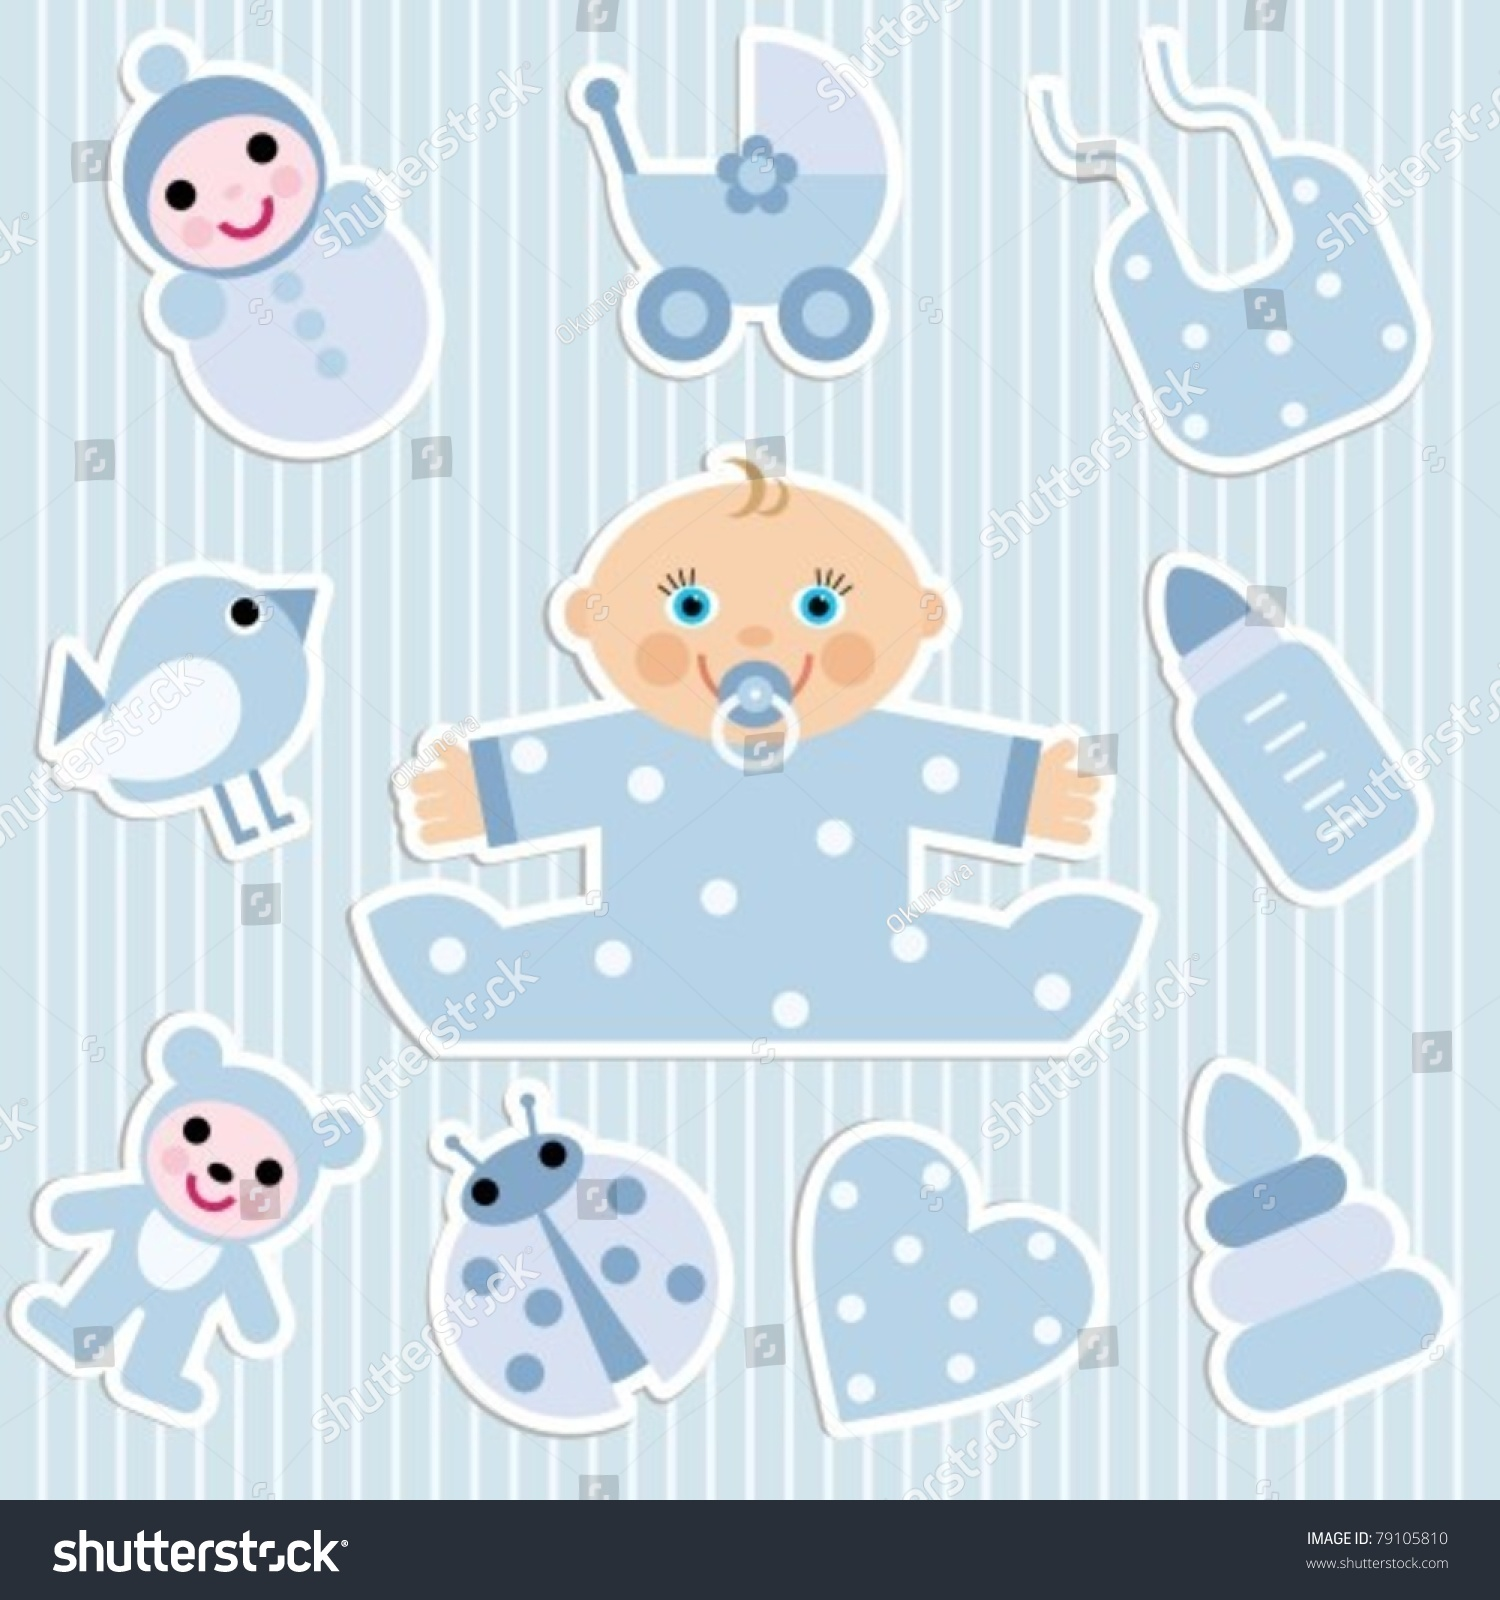 Stickers Kids Toys Stock Vector Shutterstock